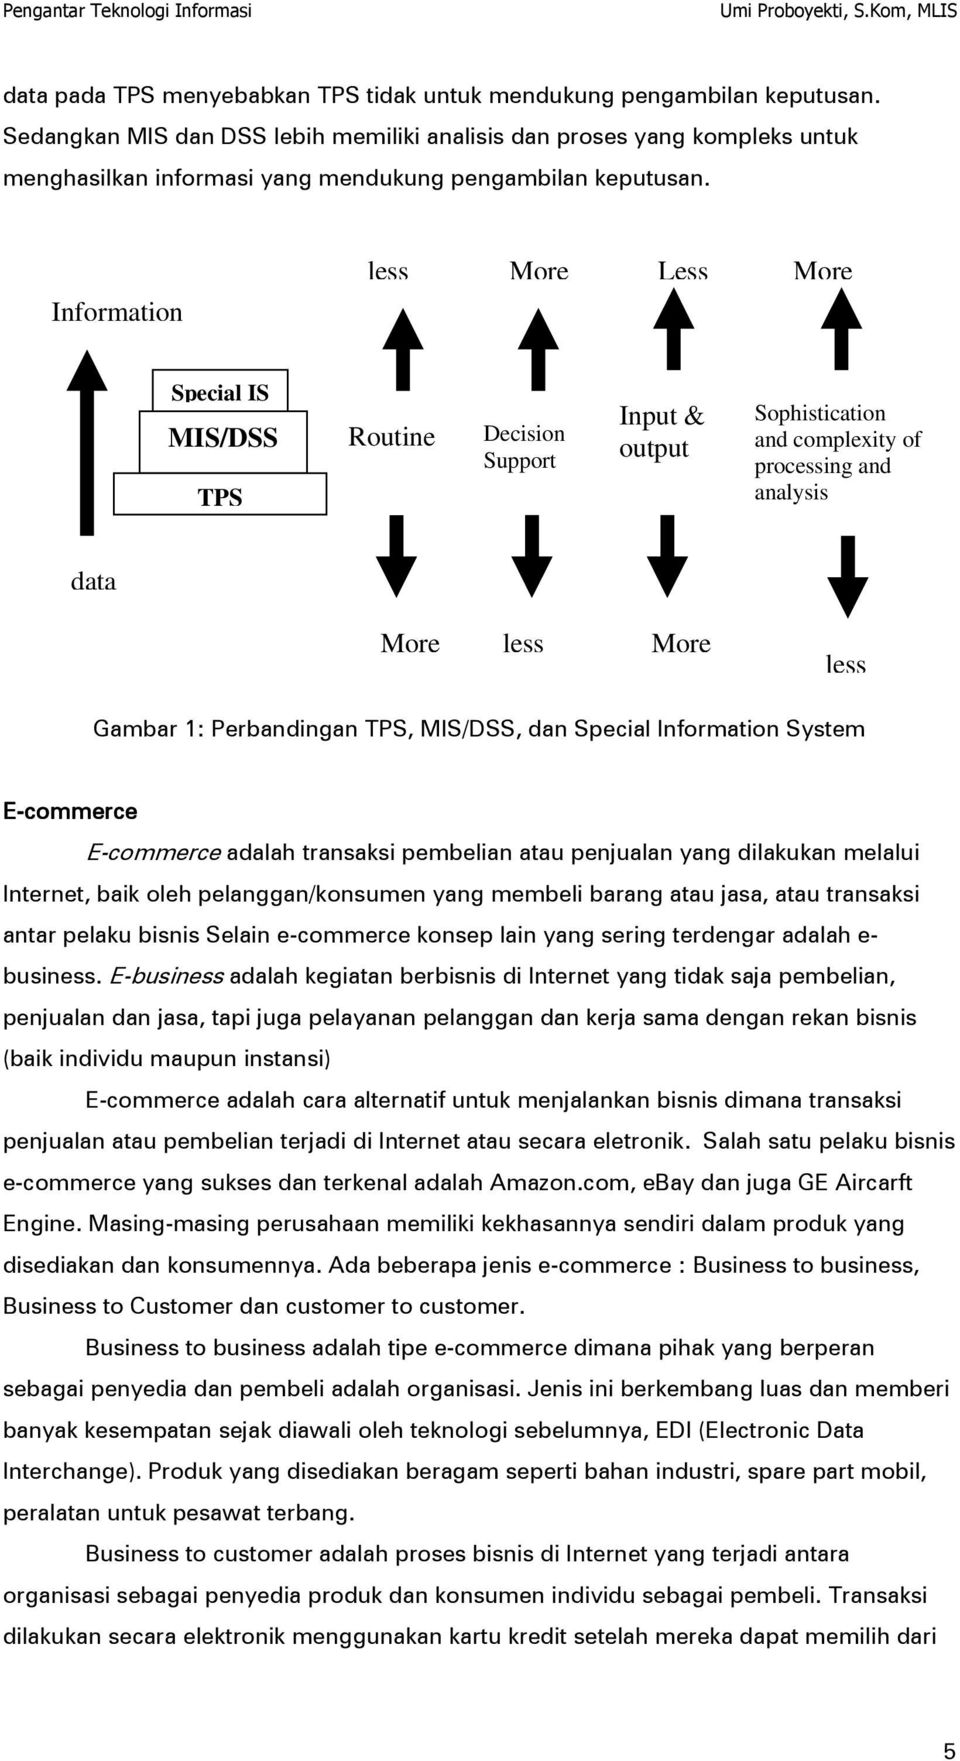 Information less More Less More Special IS MIS/DSS TPS Routine Decision Support Input & output Sophistication and complexity of processing and analysis data More less More less Gambar 1: Perbandingan